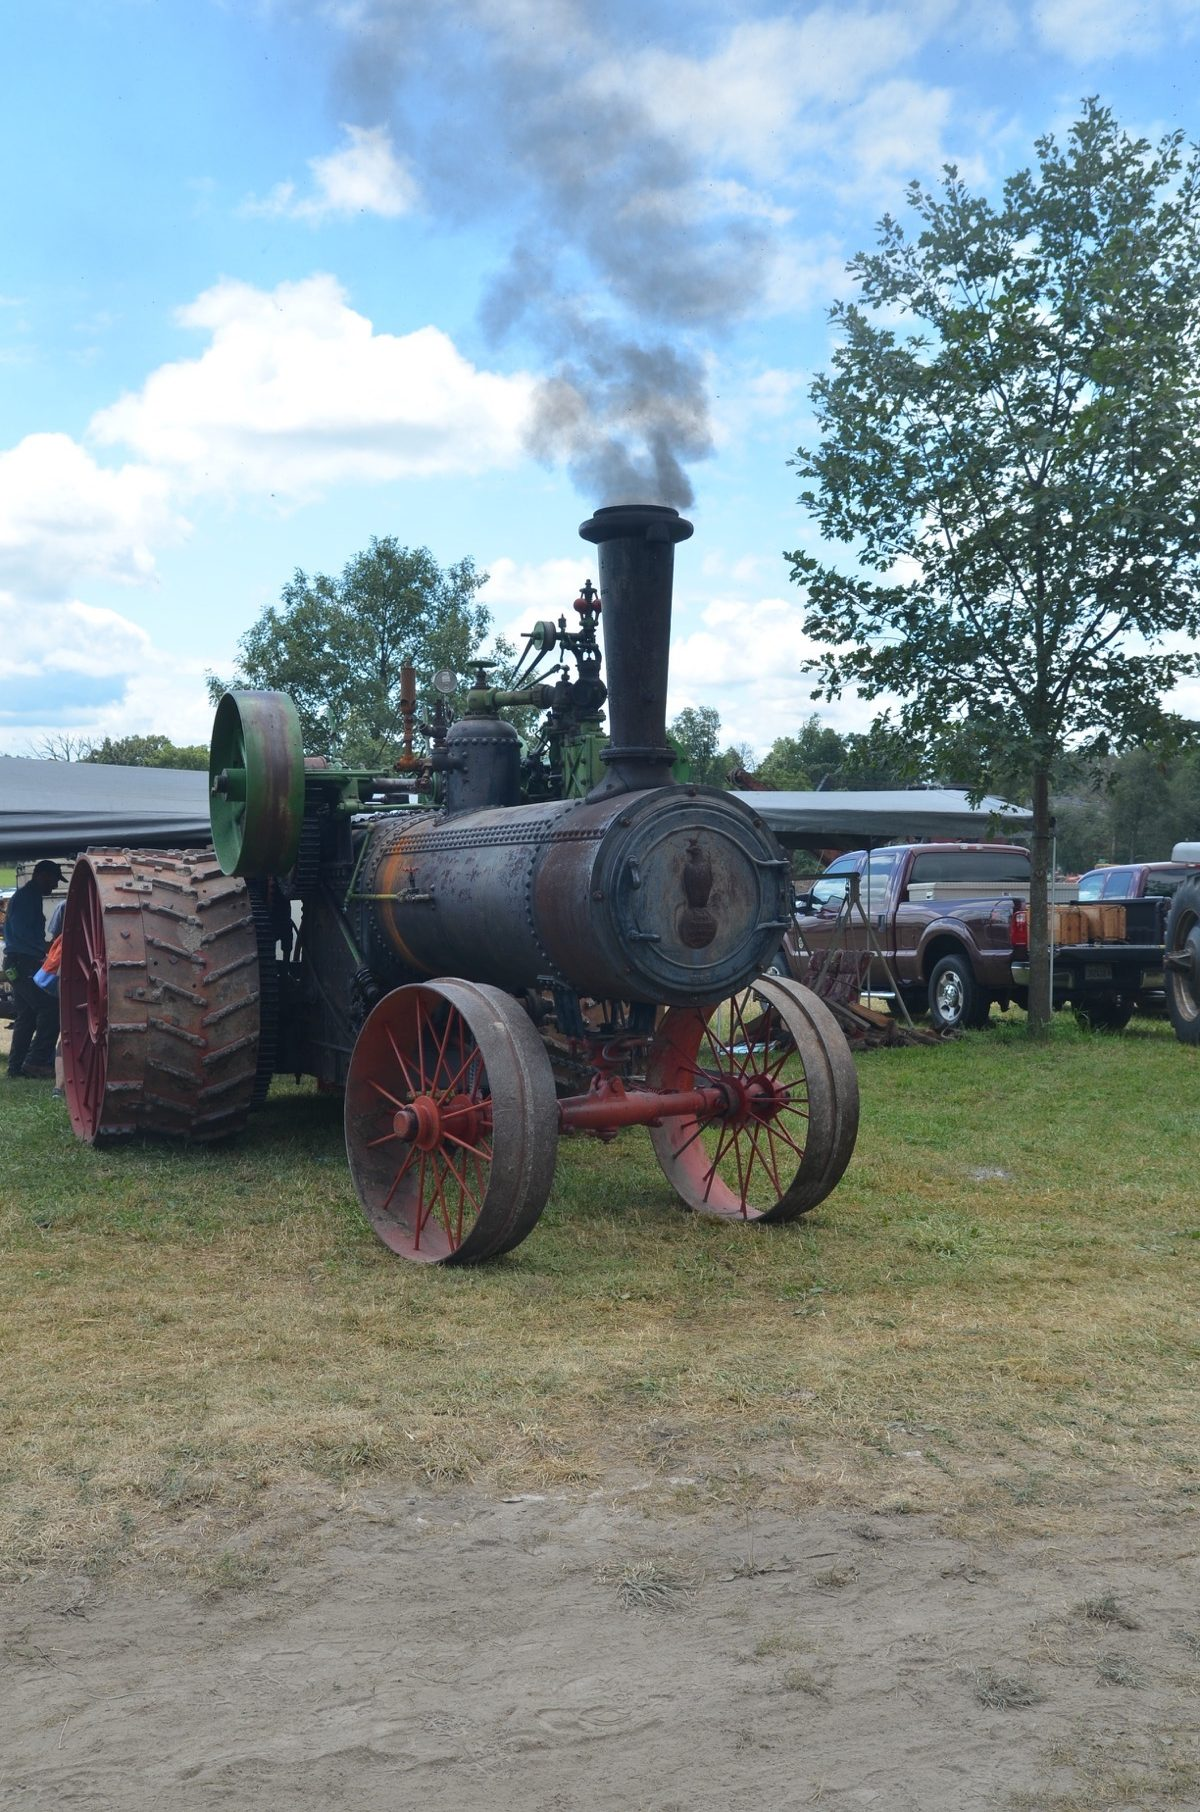 Steam and Power, Baby! More Great Photos From The Northern Illinois Steam and Power Show